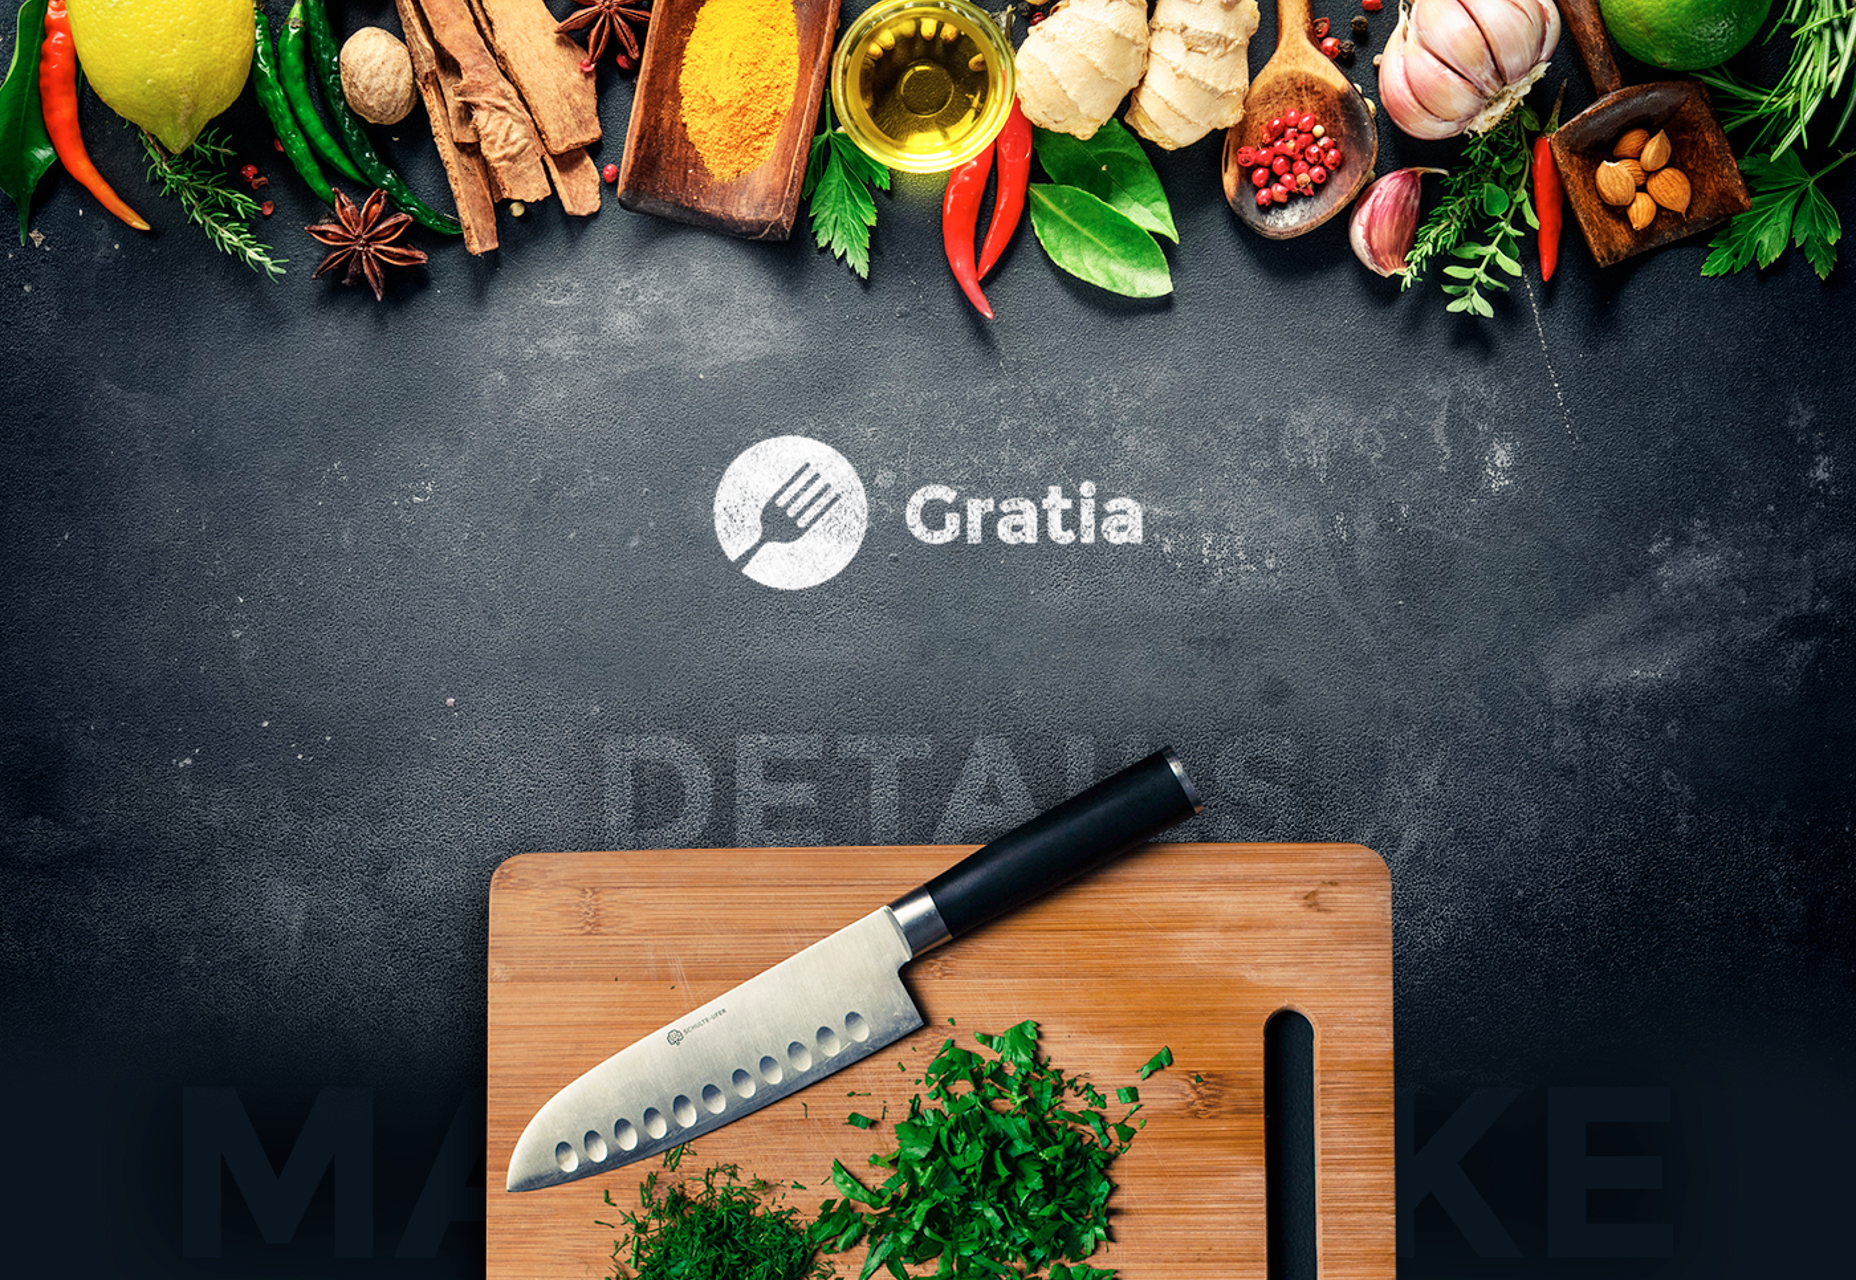 gratia-beautifully-crafted-restaurant-psd-template